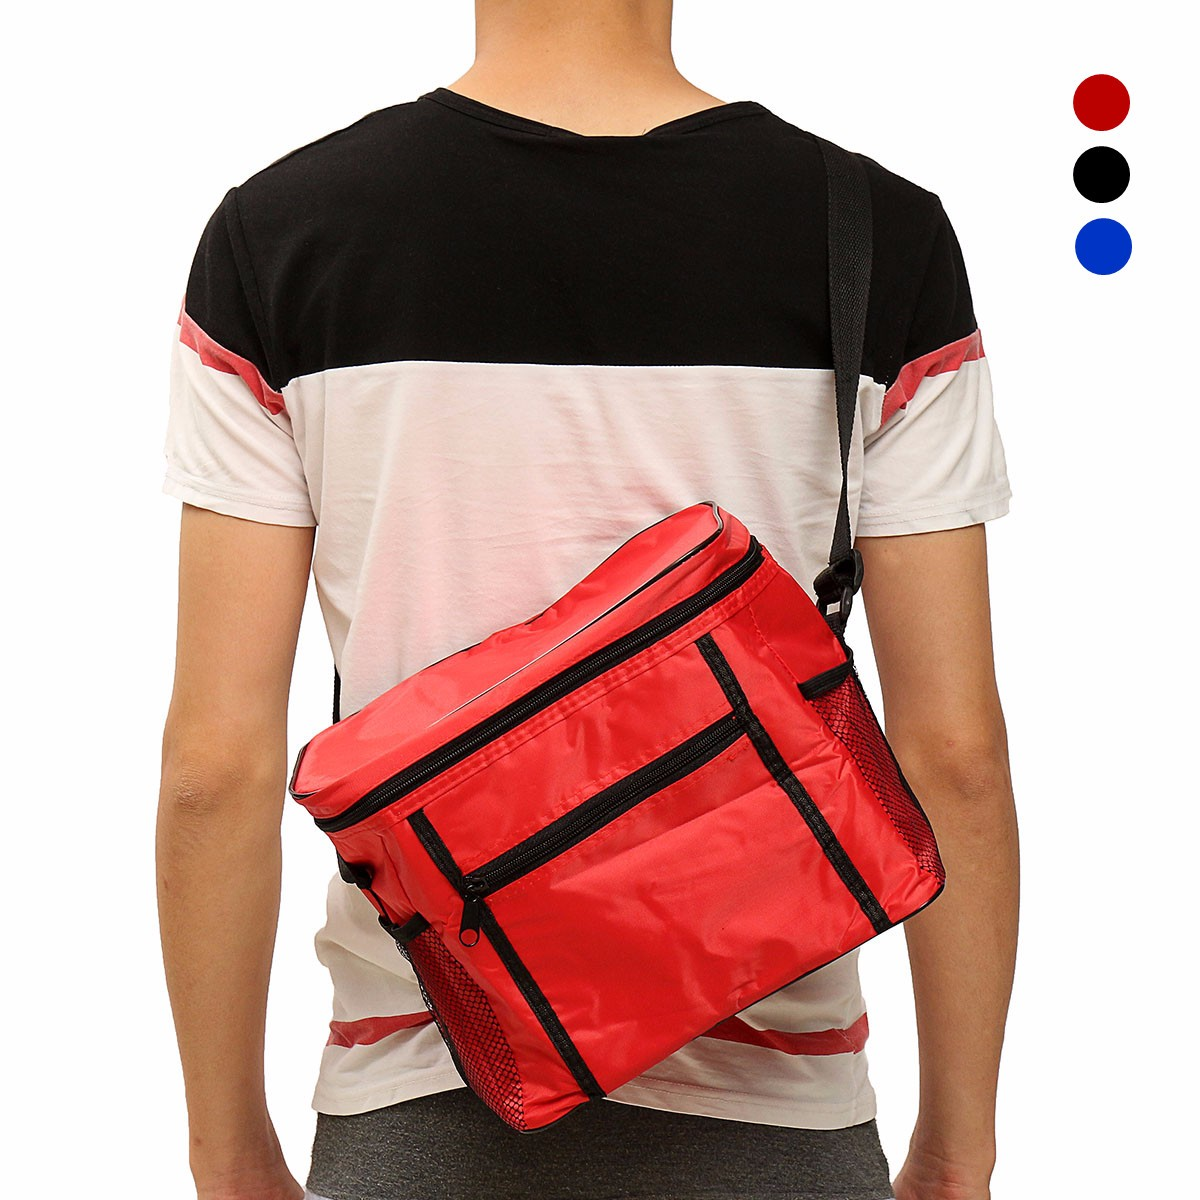 Waterproof Portable Thermal Cooler Insulated Lunch Ice Picnic Tote Bag Outdoor Shoulder Handbag Insulated Storage Bags